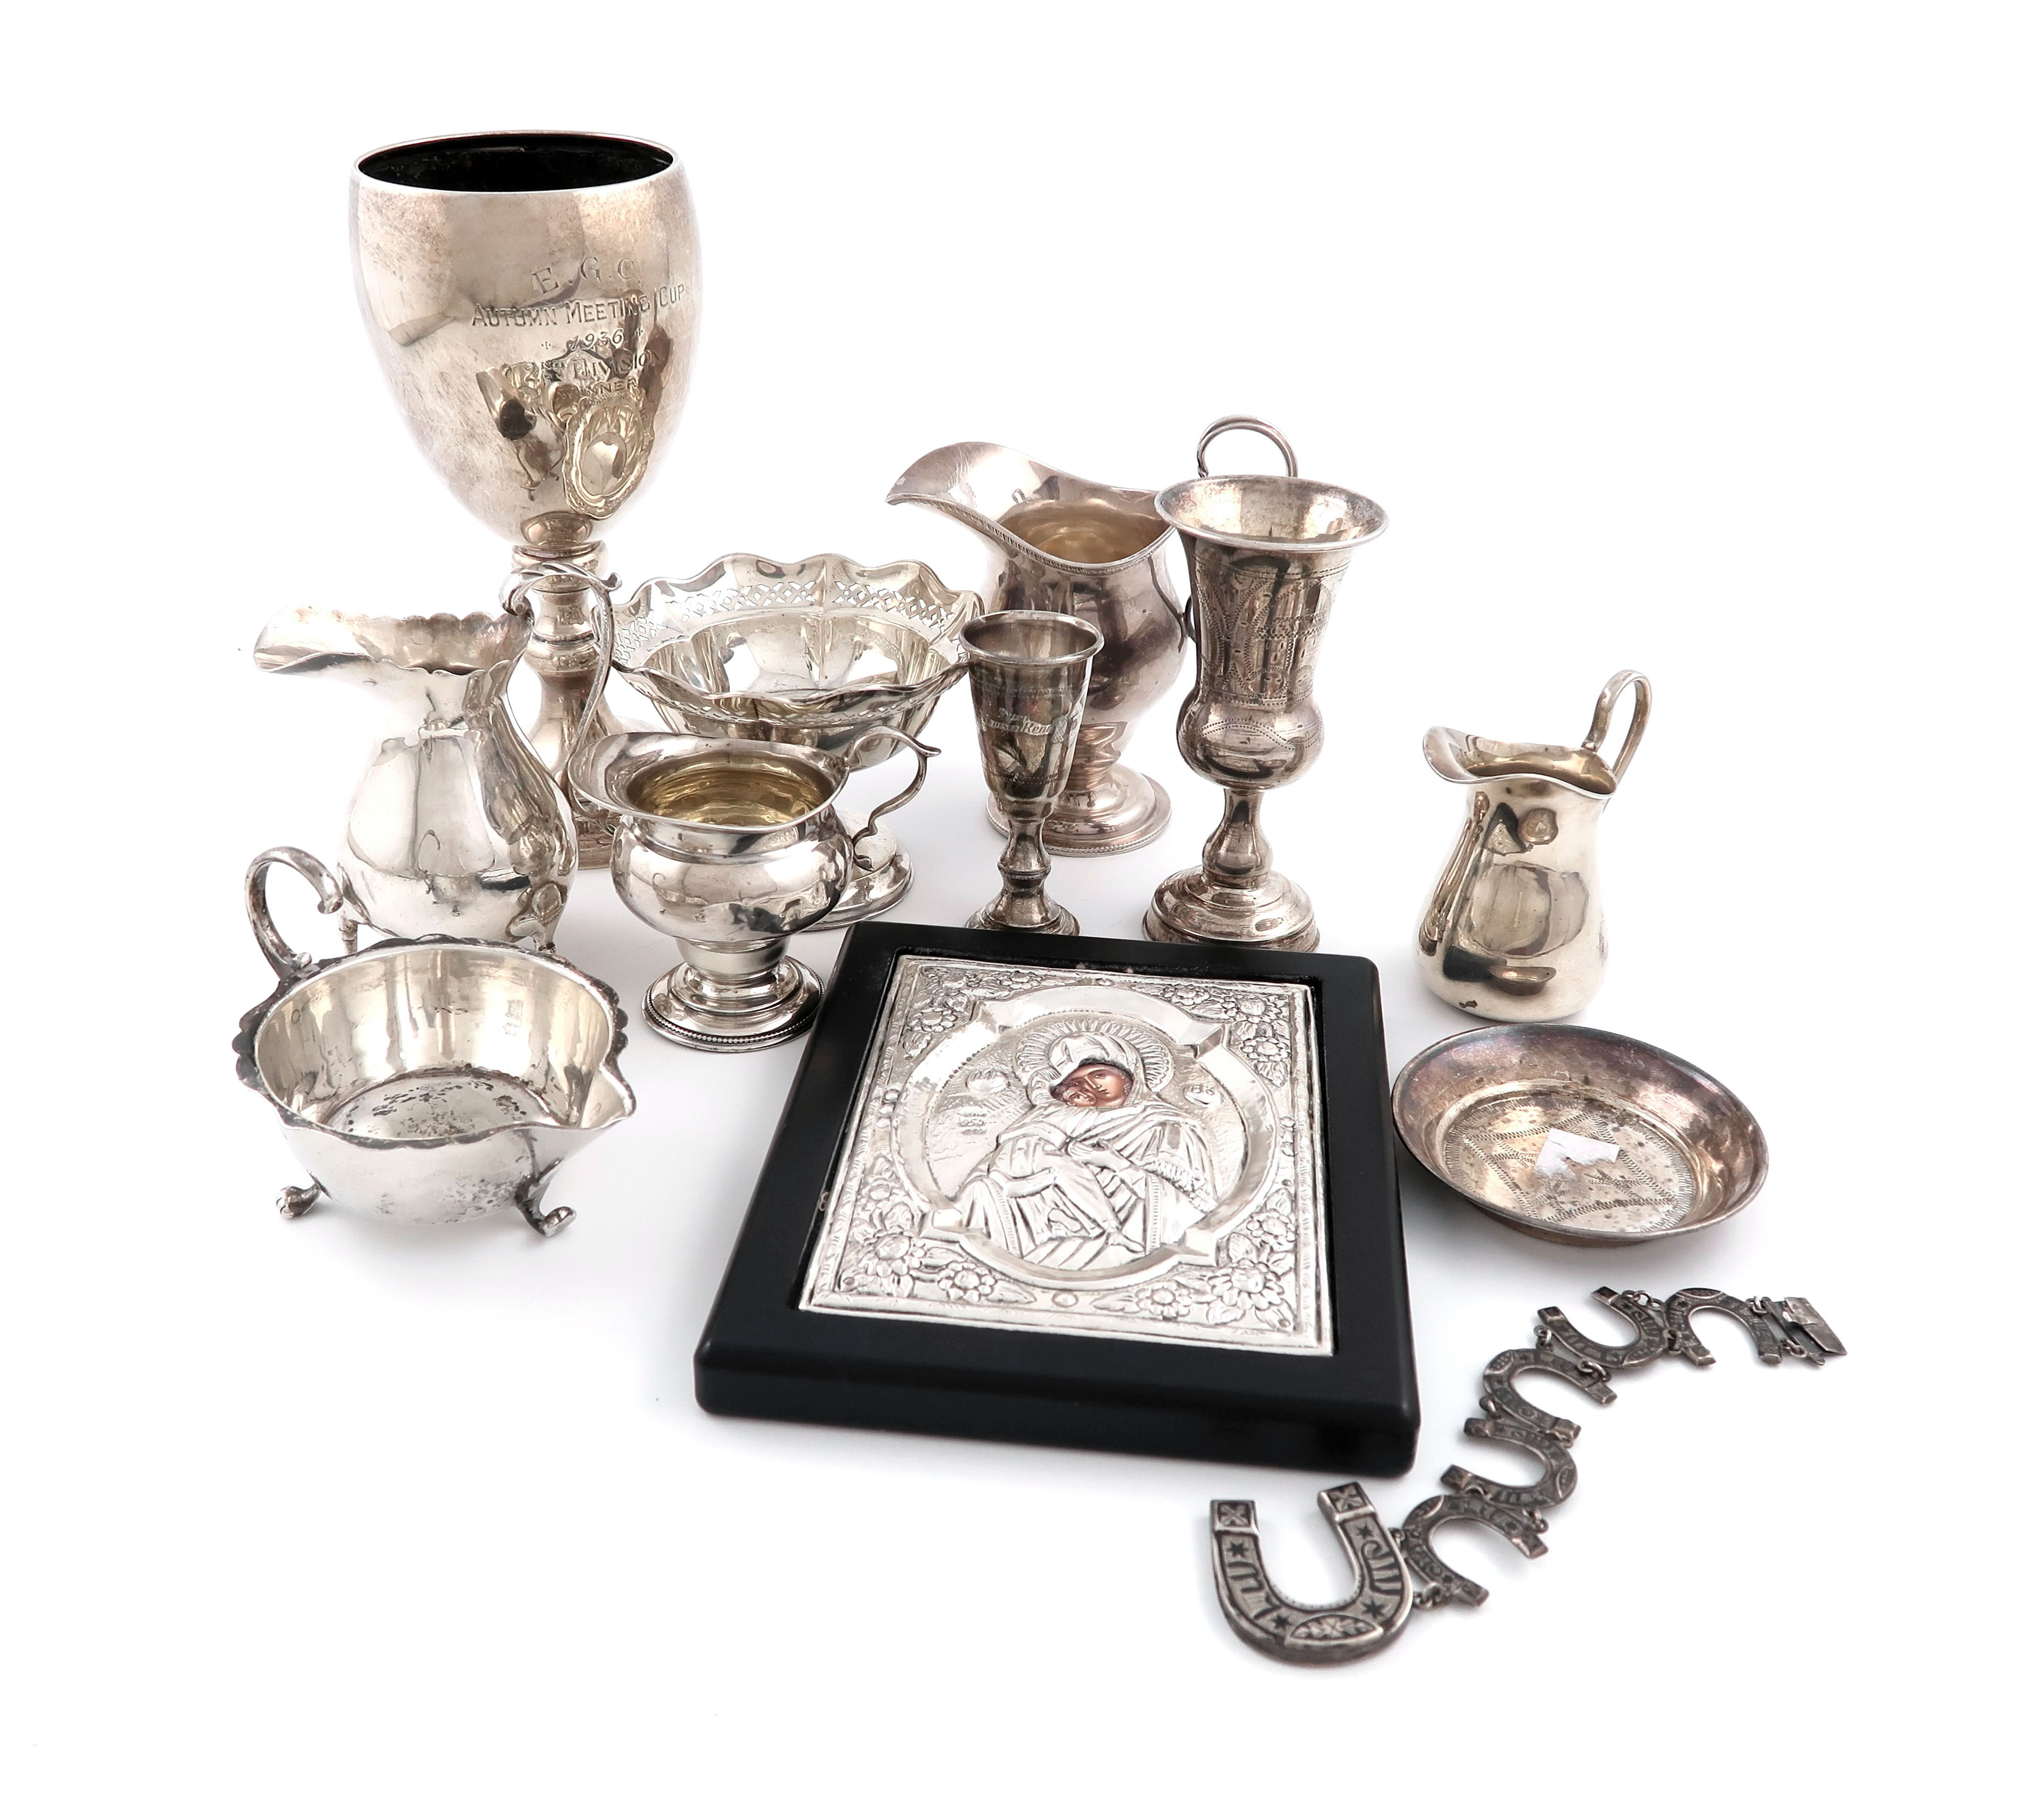 A mixed lot of silver items